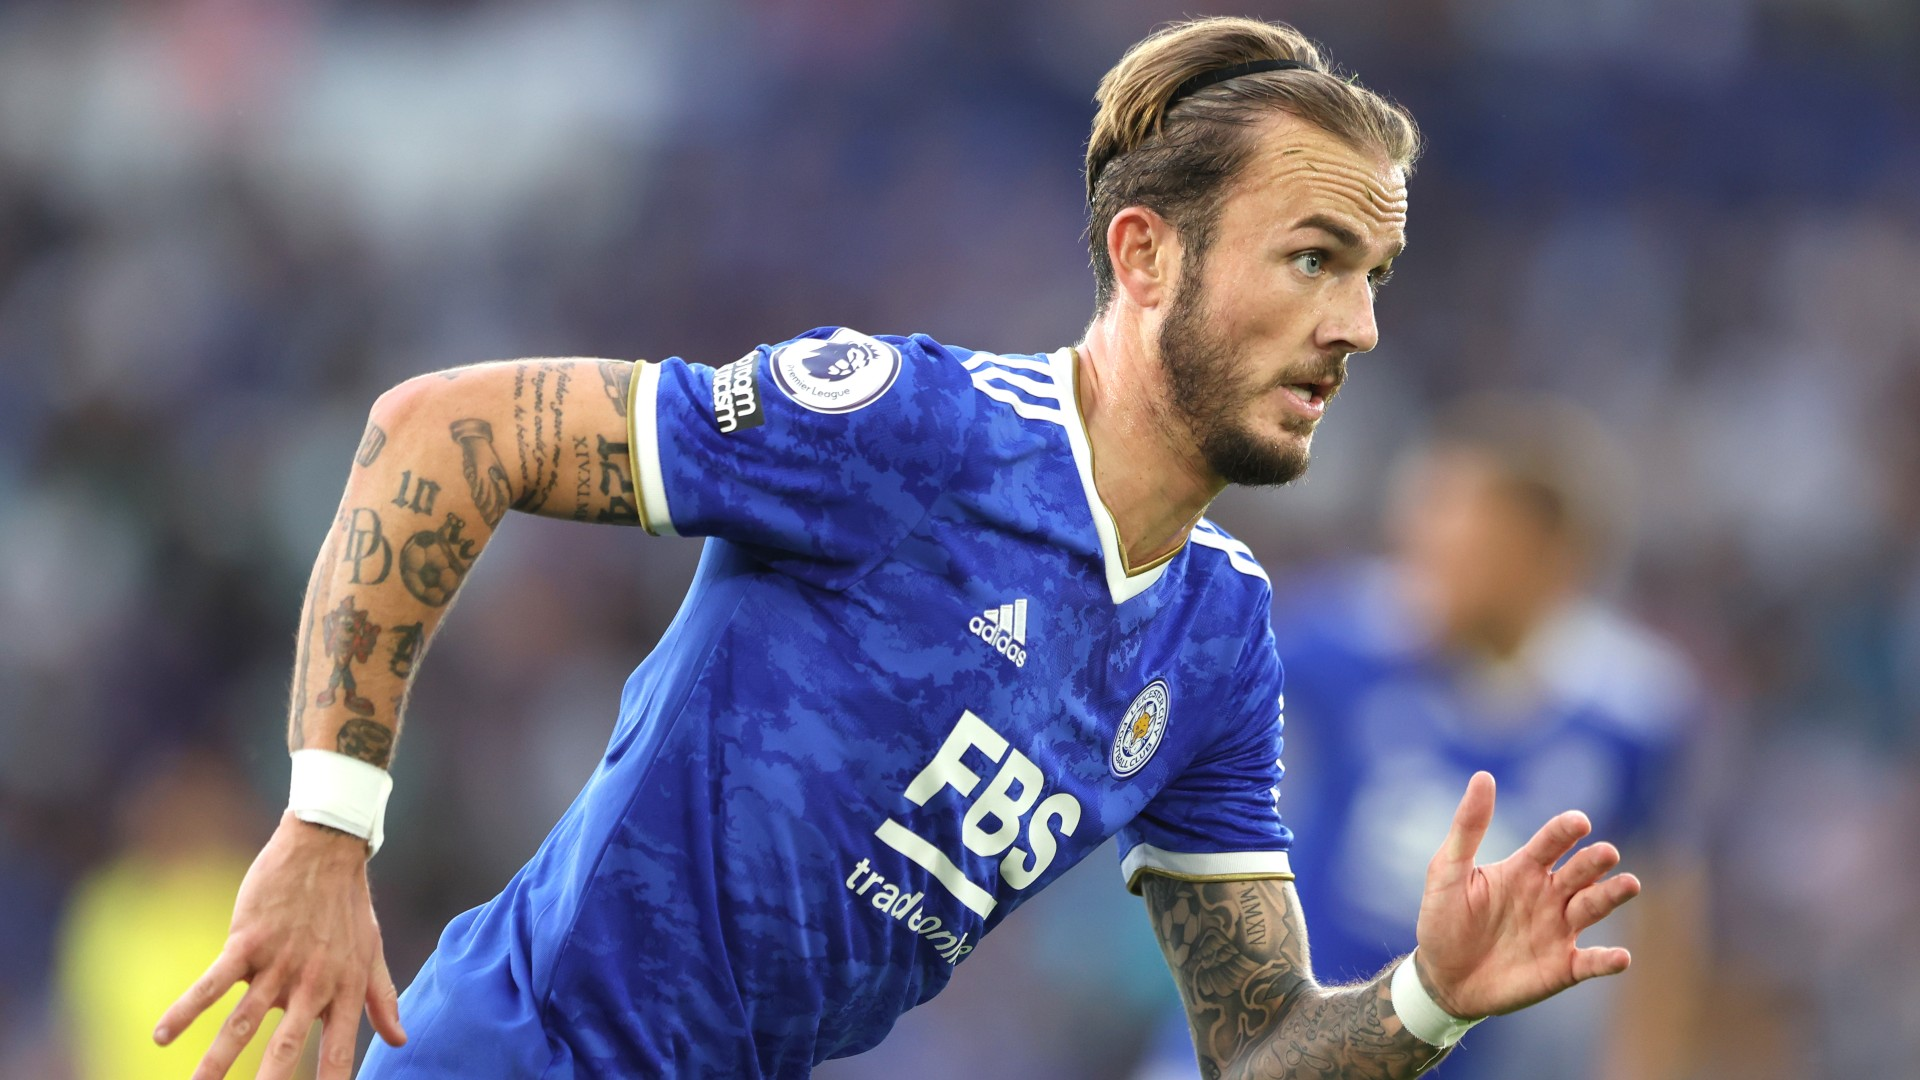 Arsenal-linked Maddison 'the same' as £100m Grealish as Leicester boss Rodgers reacts to transfer talk